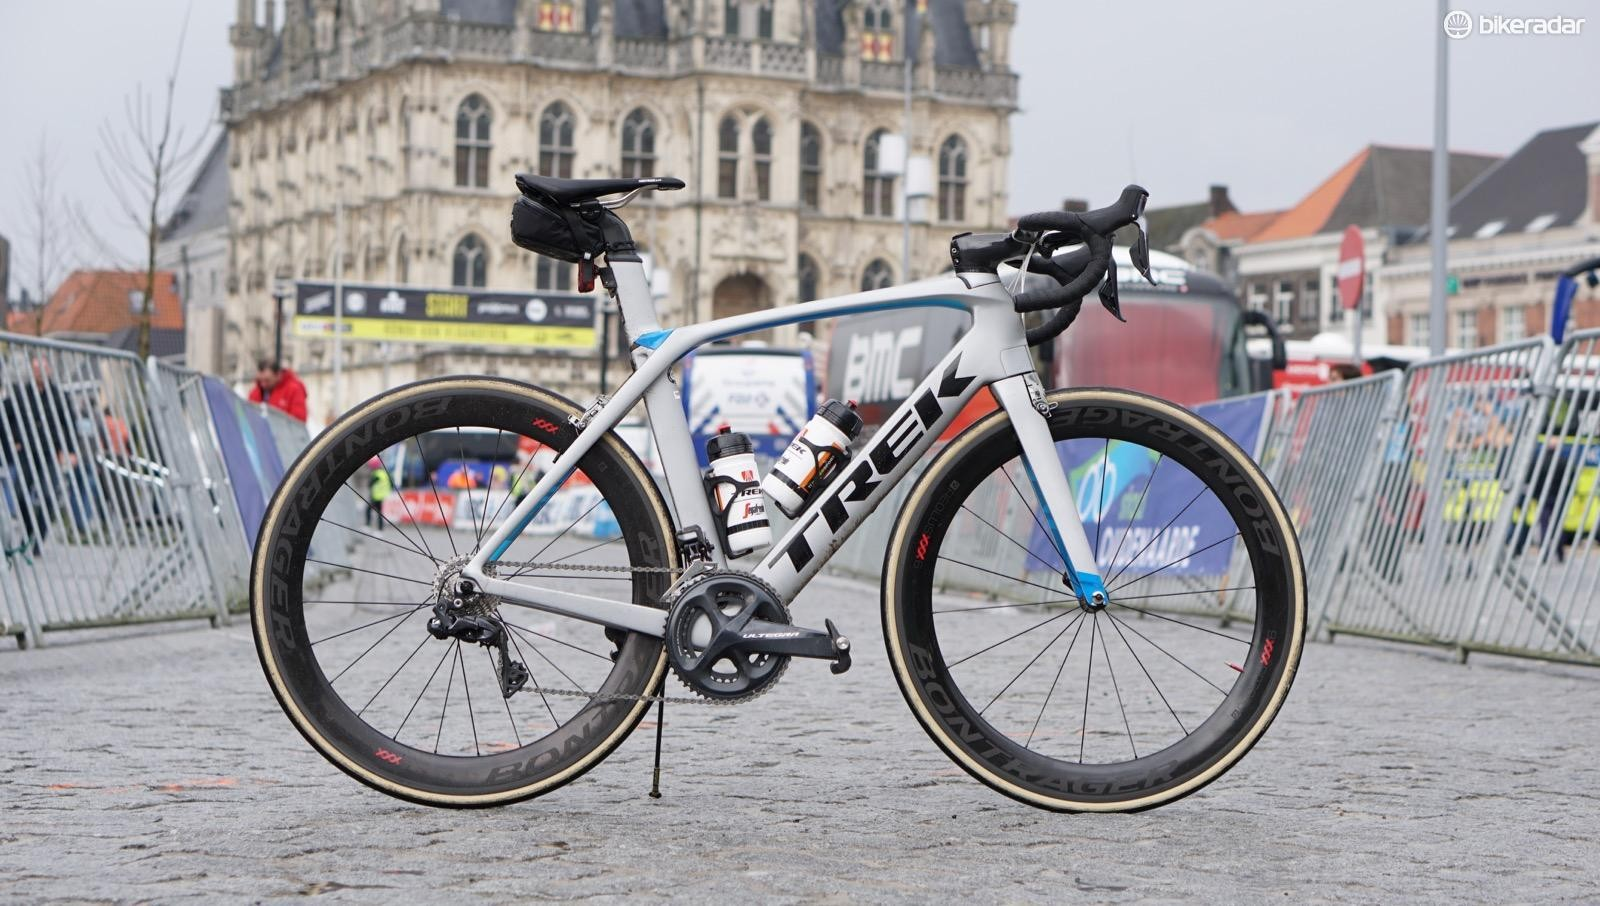 The Trek Madone with new Bontrager Aeolus XXX wheels placed second in the 2018 Ronde van Vlaanderen... under Mads Petersen. Under me, it placed, uh, 5,425th or so in the Ronde sportive